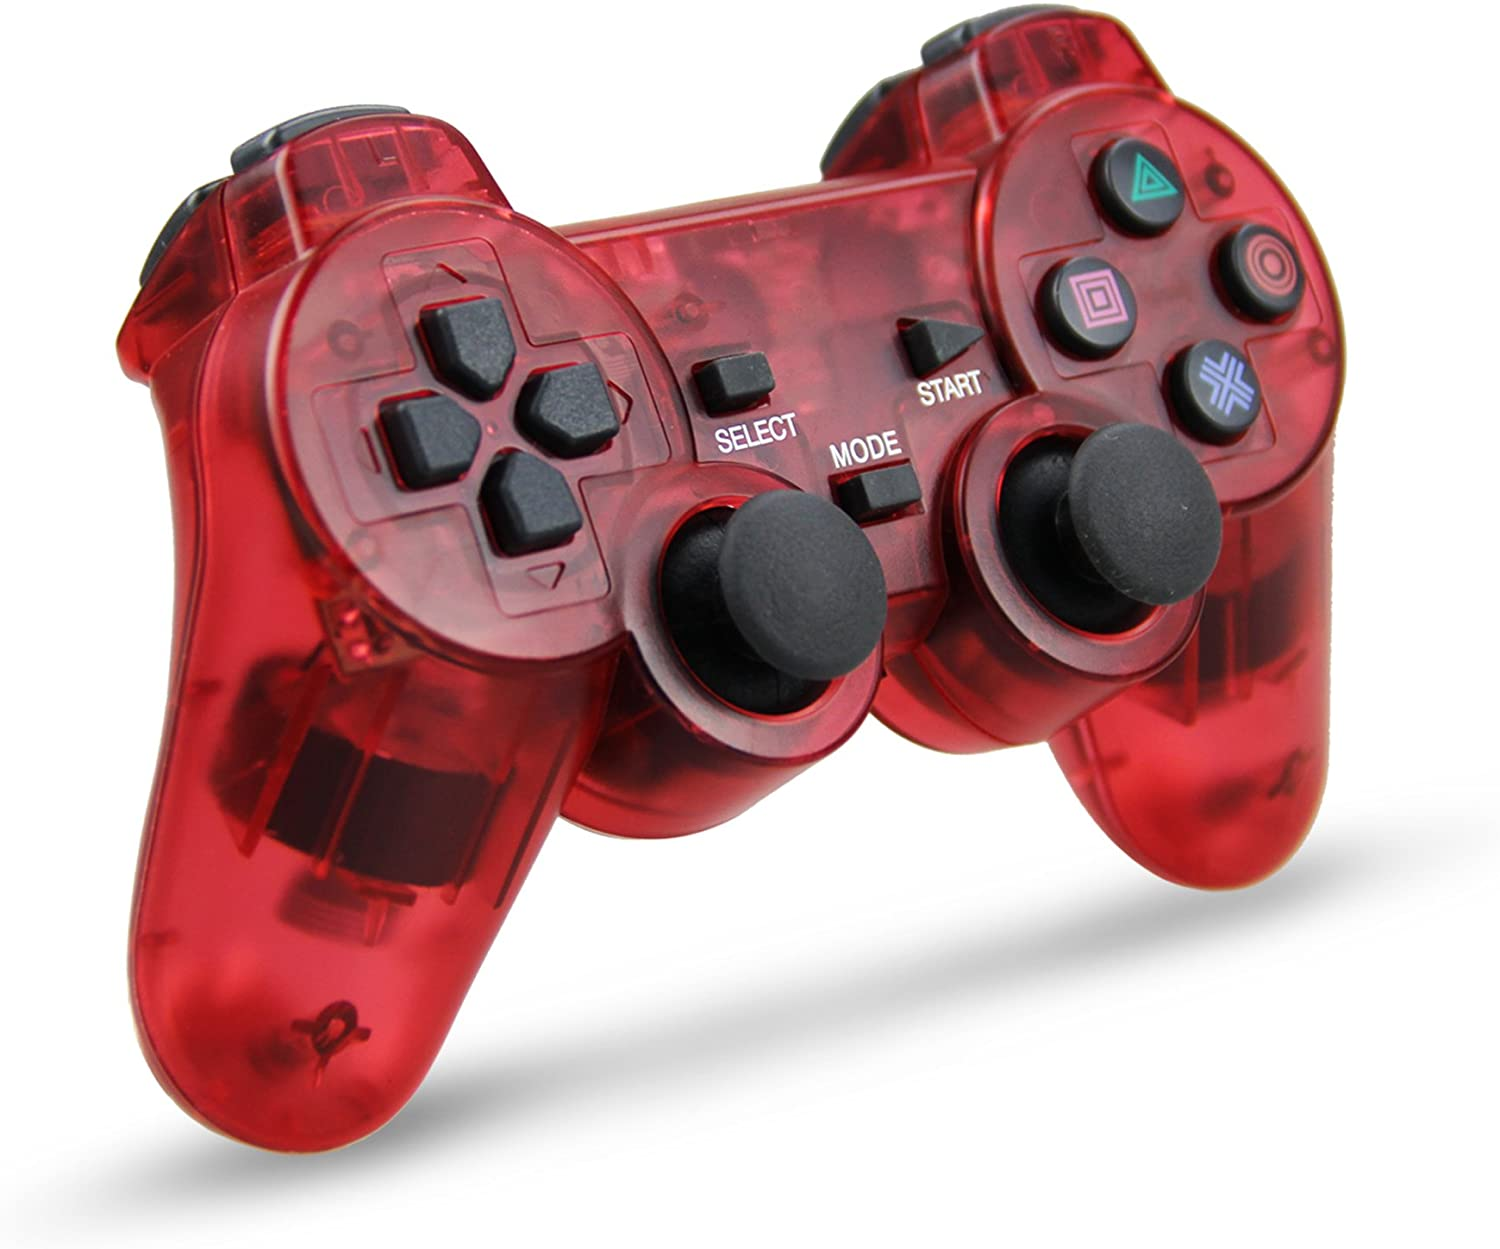 Wireless Game Controller, Double Shock Gamepad for Sony PS2 Playstation 2 (Clear Red)